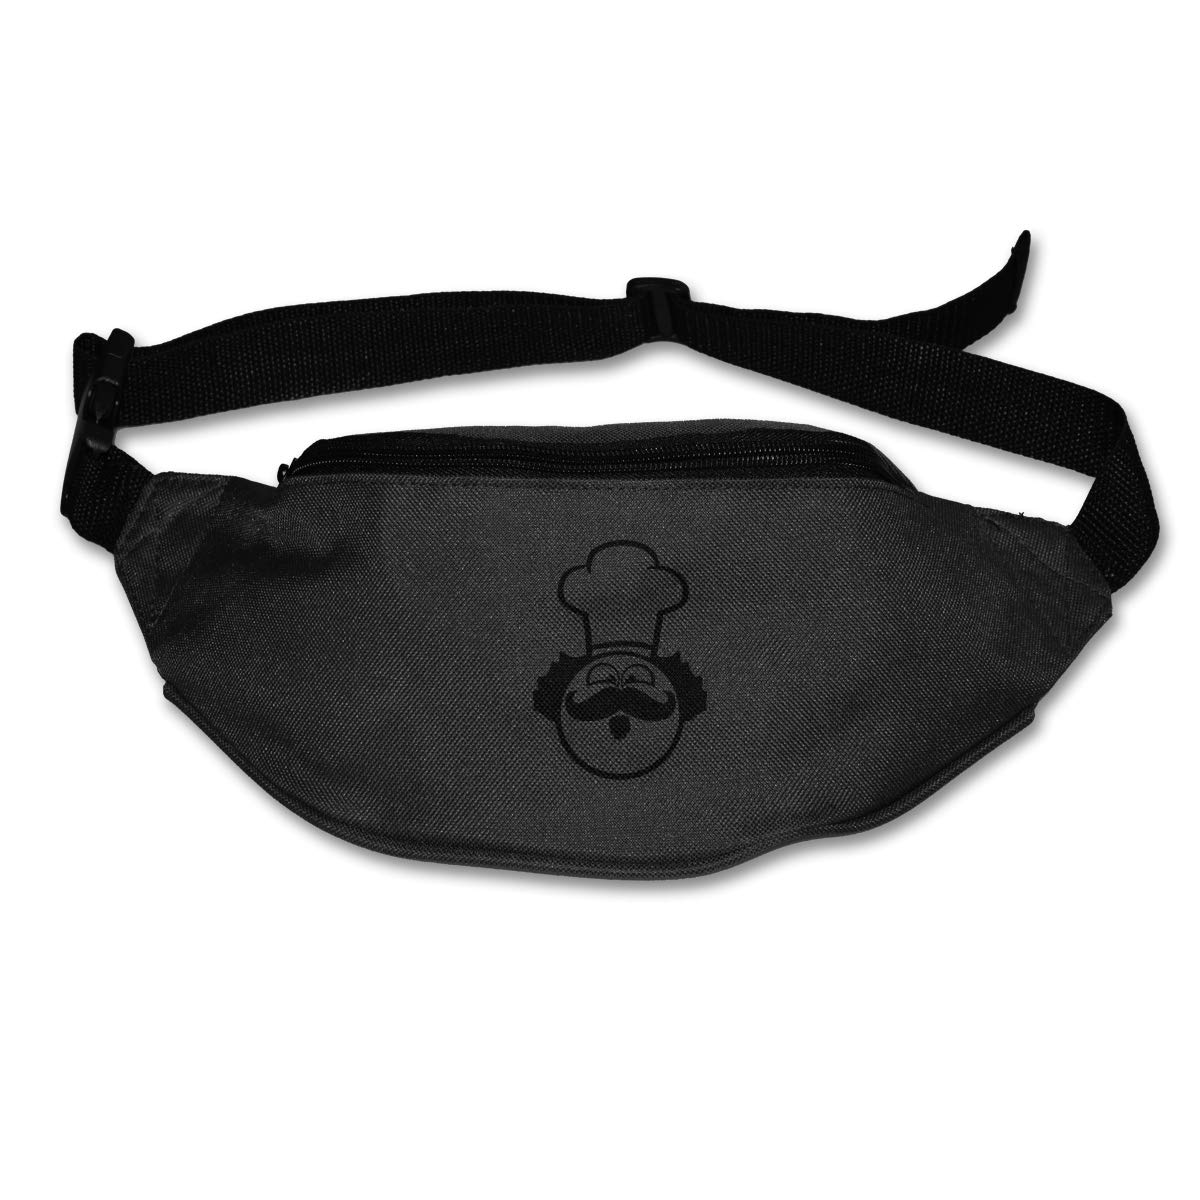 Chef Mustache Face Sport Waist Packs Fanny Pack Adjustable For Travel